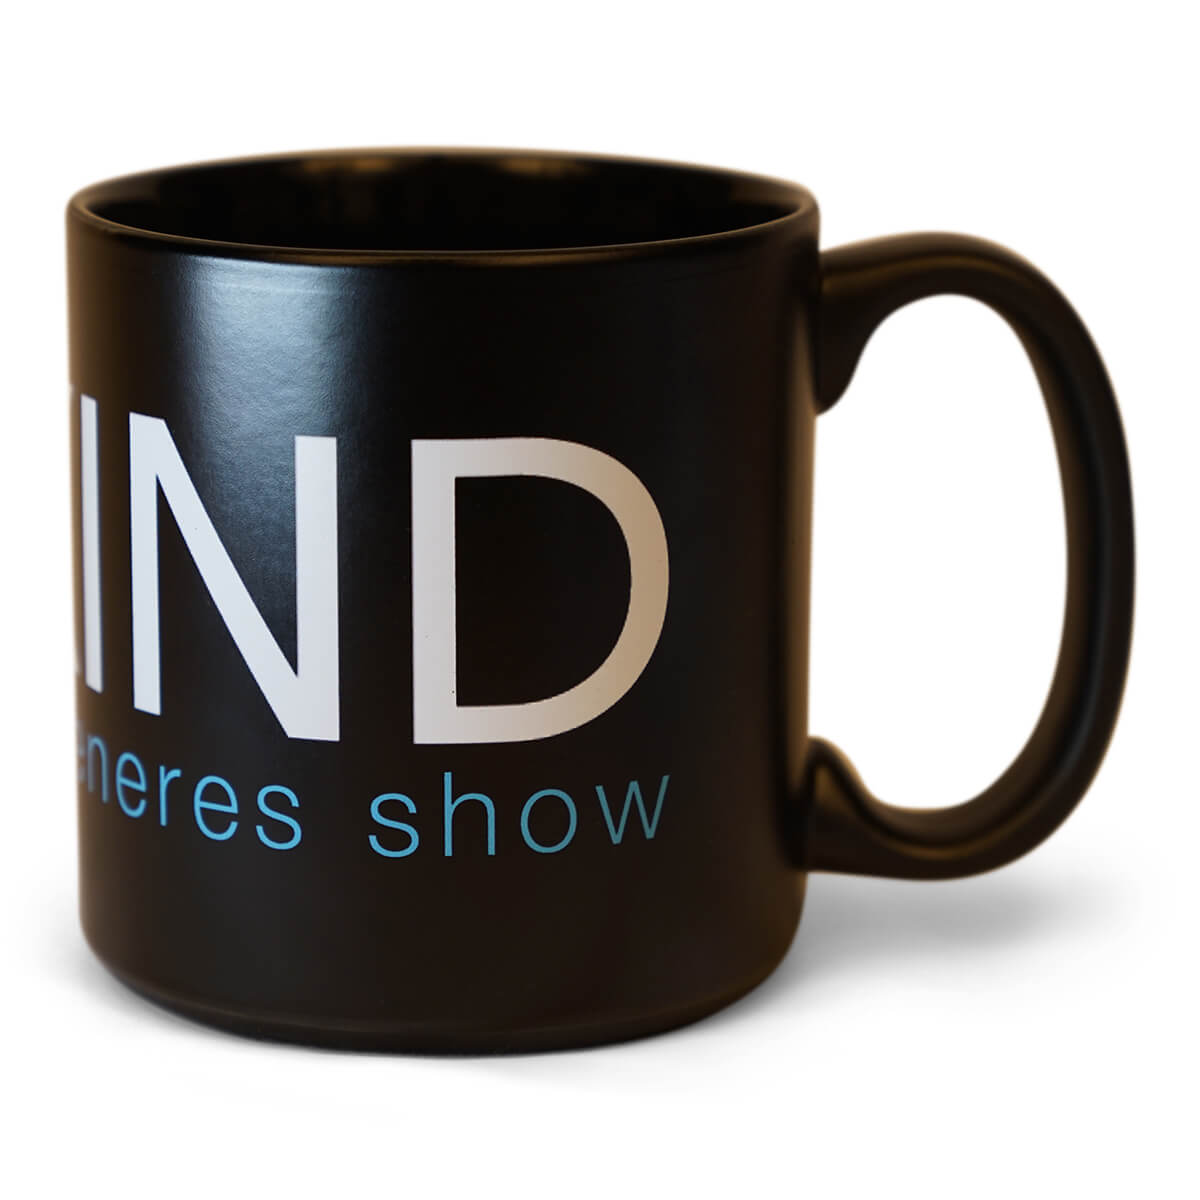 The Ellen Degeneres Show- Be Kind Oversized Black Mug - Black - Front